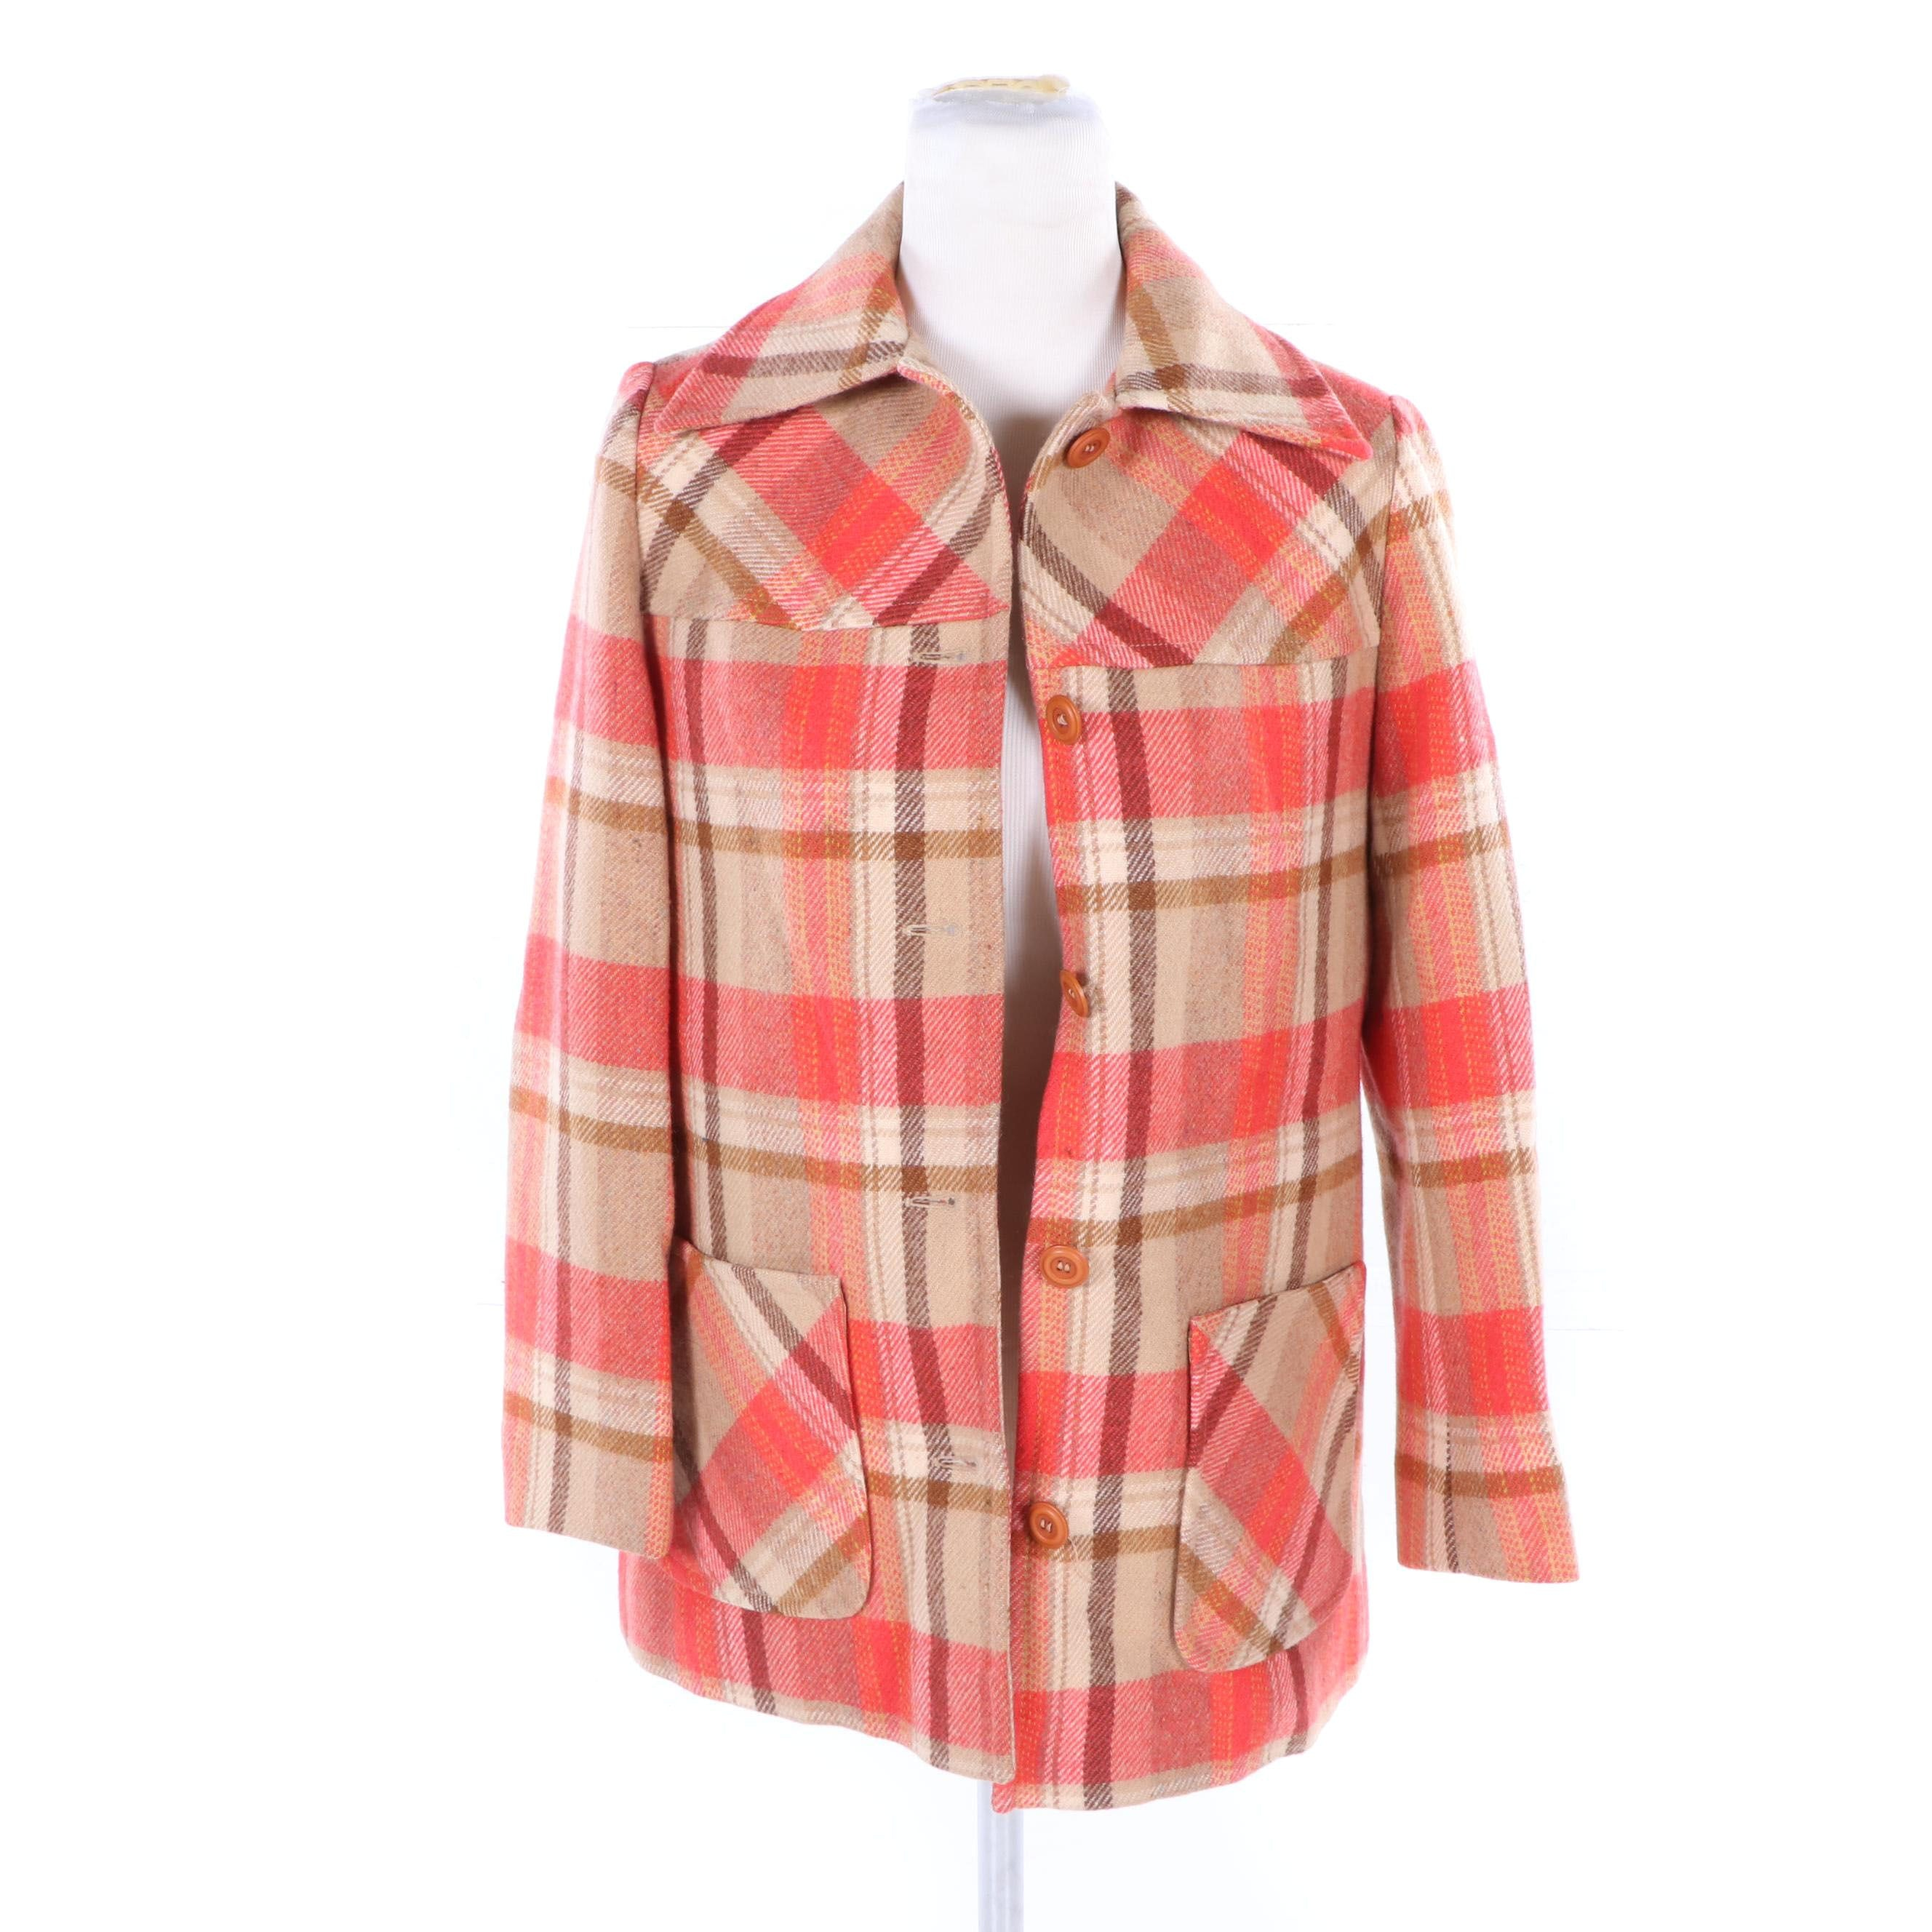 Women's Vintage Young Pendleton Plaid Wool Shirt Jacket